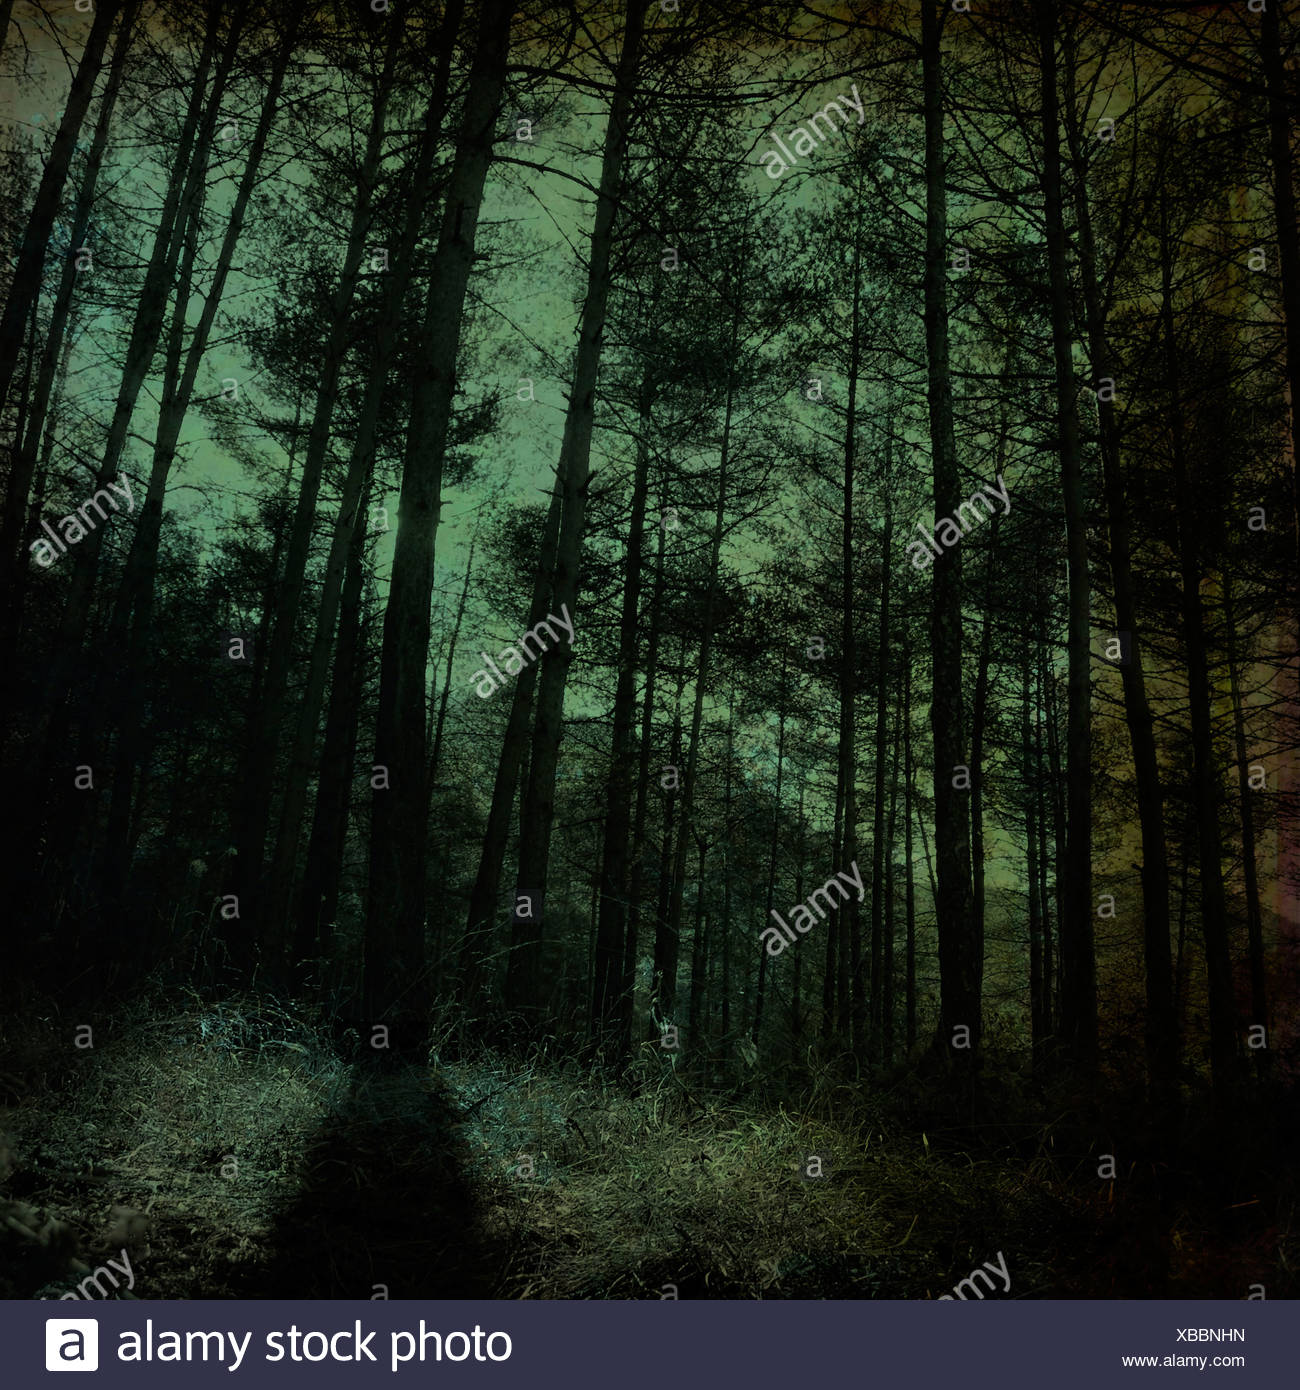 A dark wood with pine trees - Stock Image